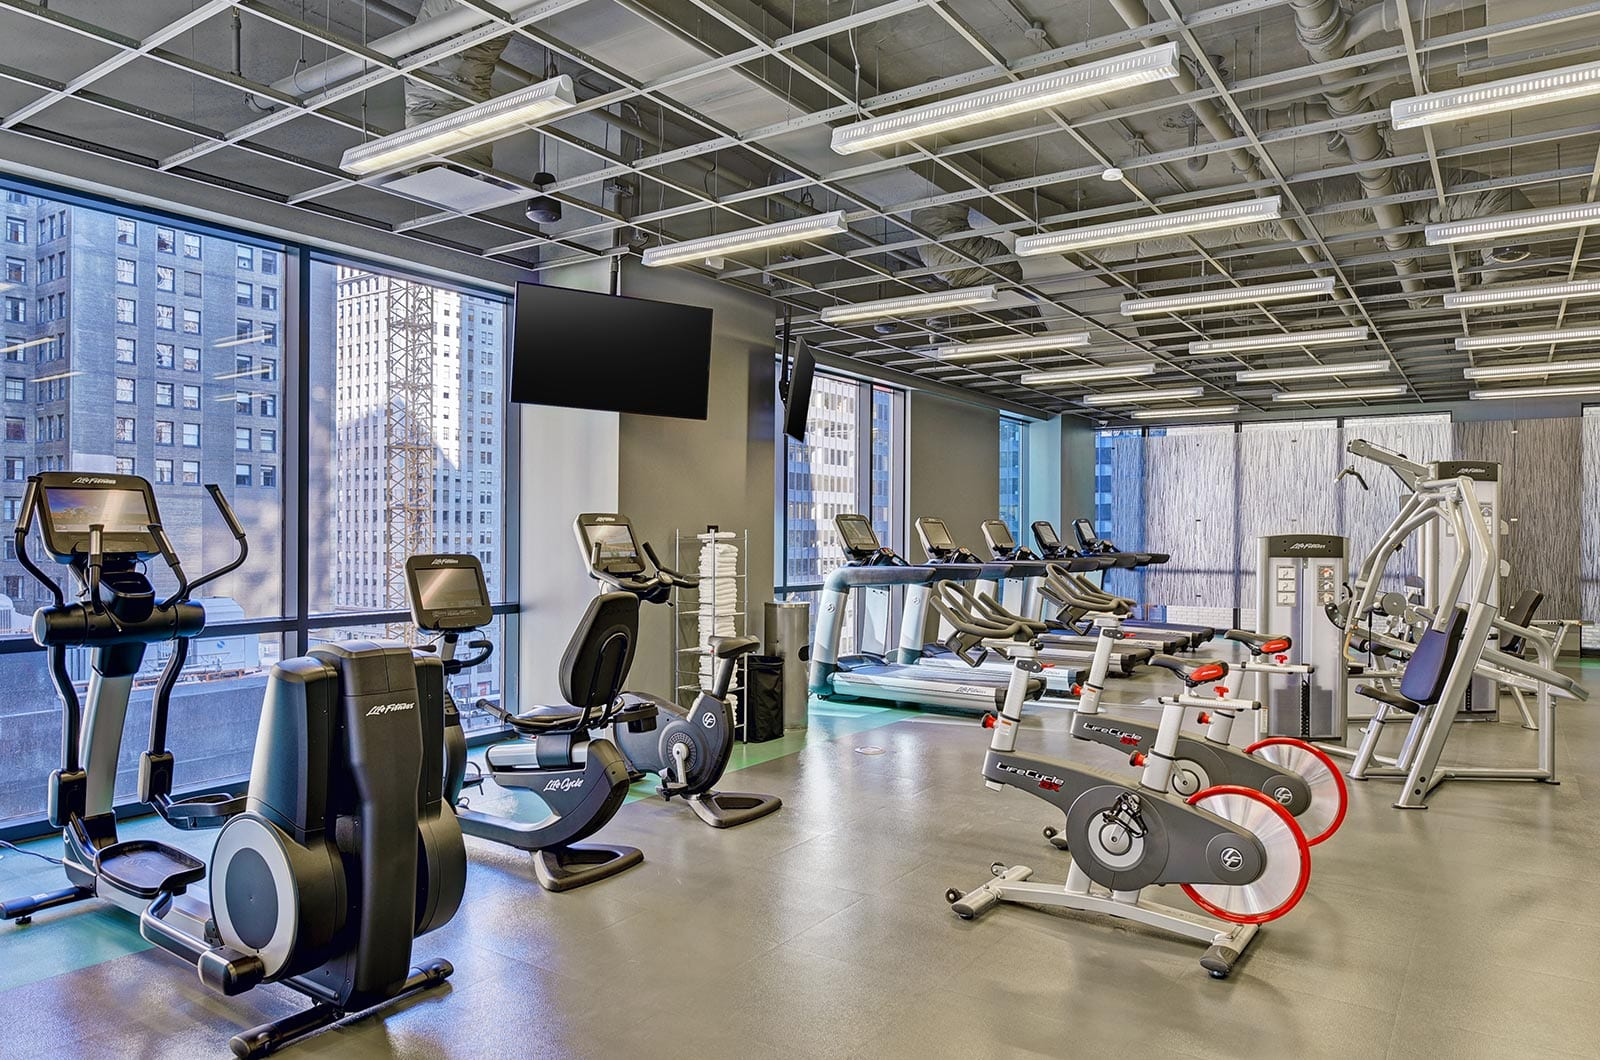 Fitness Center Virtual Tour Services | Fitness Center Virtual Tour Company